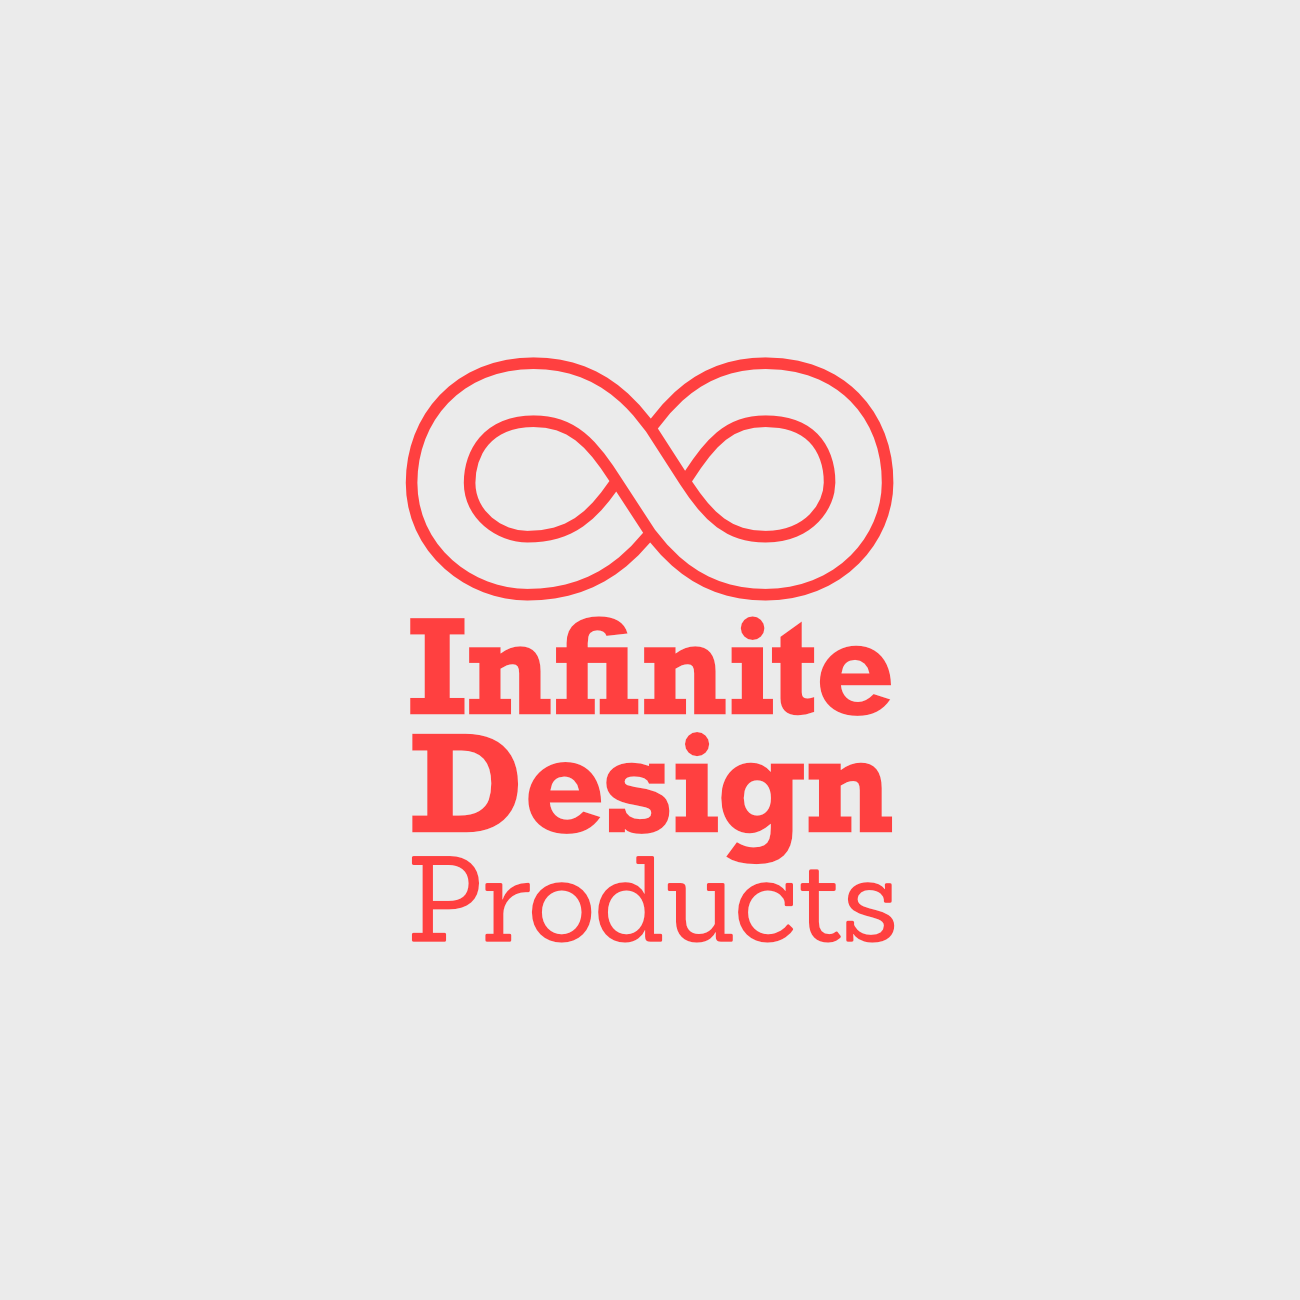 Infinite Design Products Logo for UK store